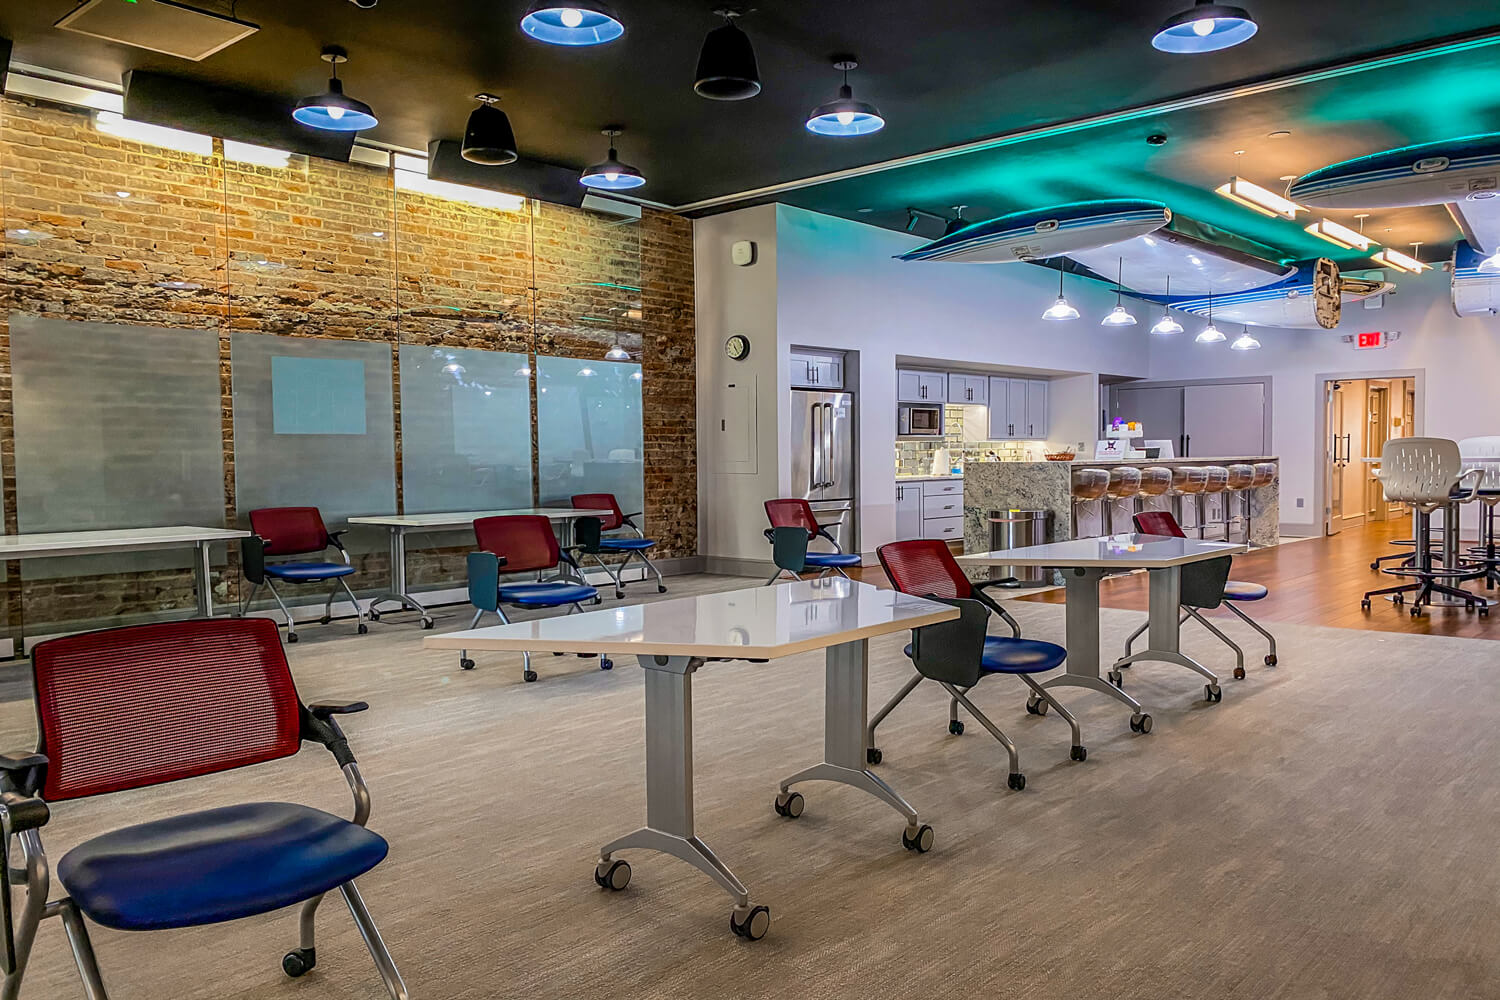 MGMWerx Collaboration Space - Meeting Area - Designed by Foshee Architecture